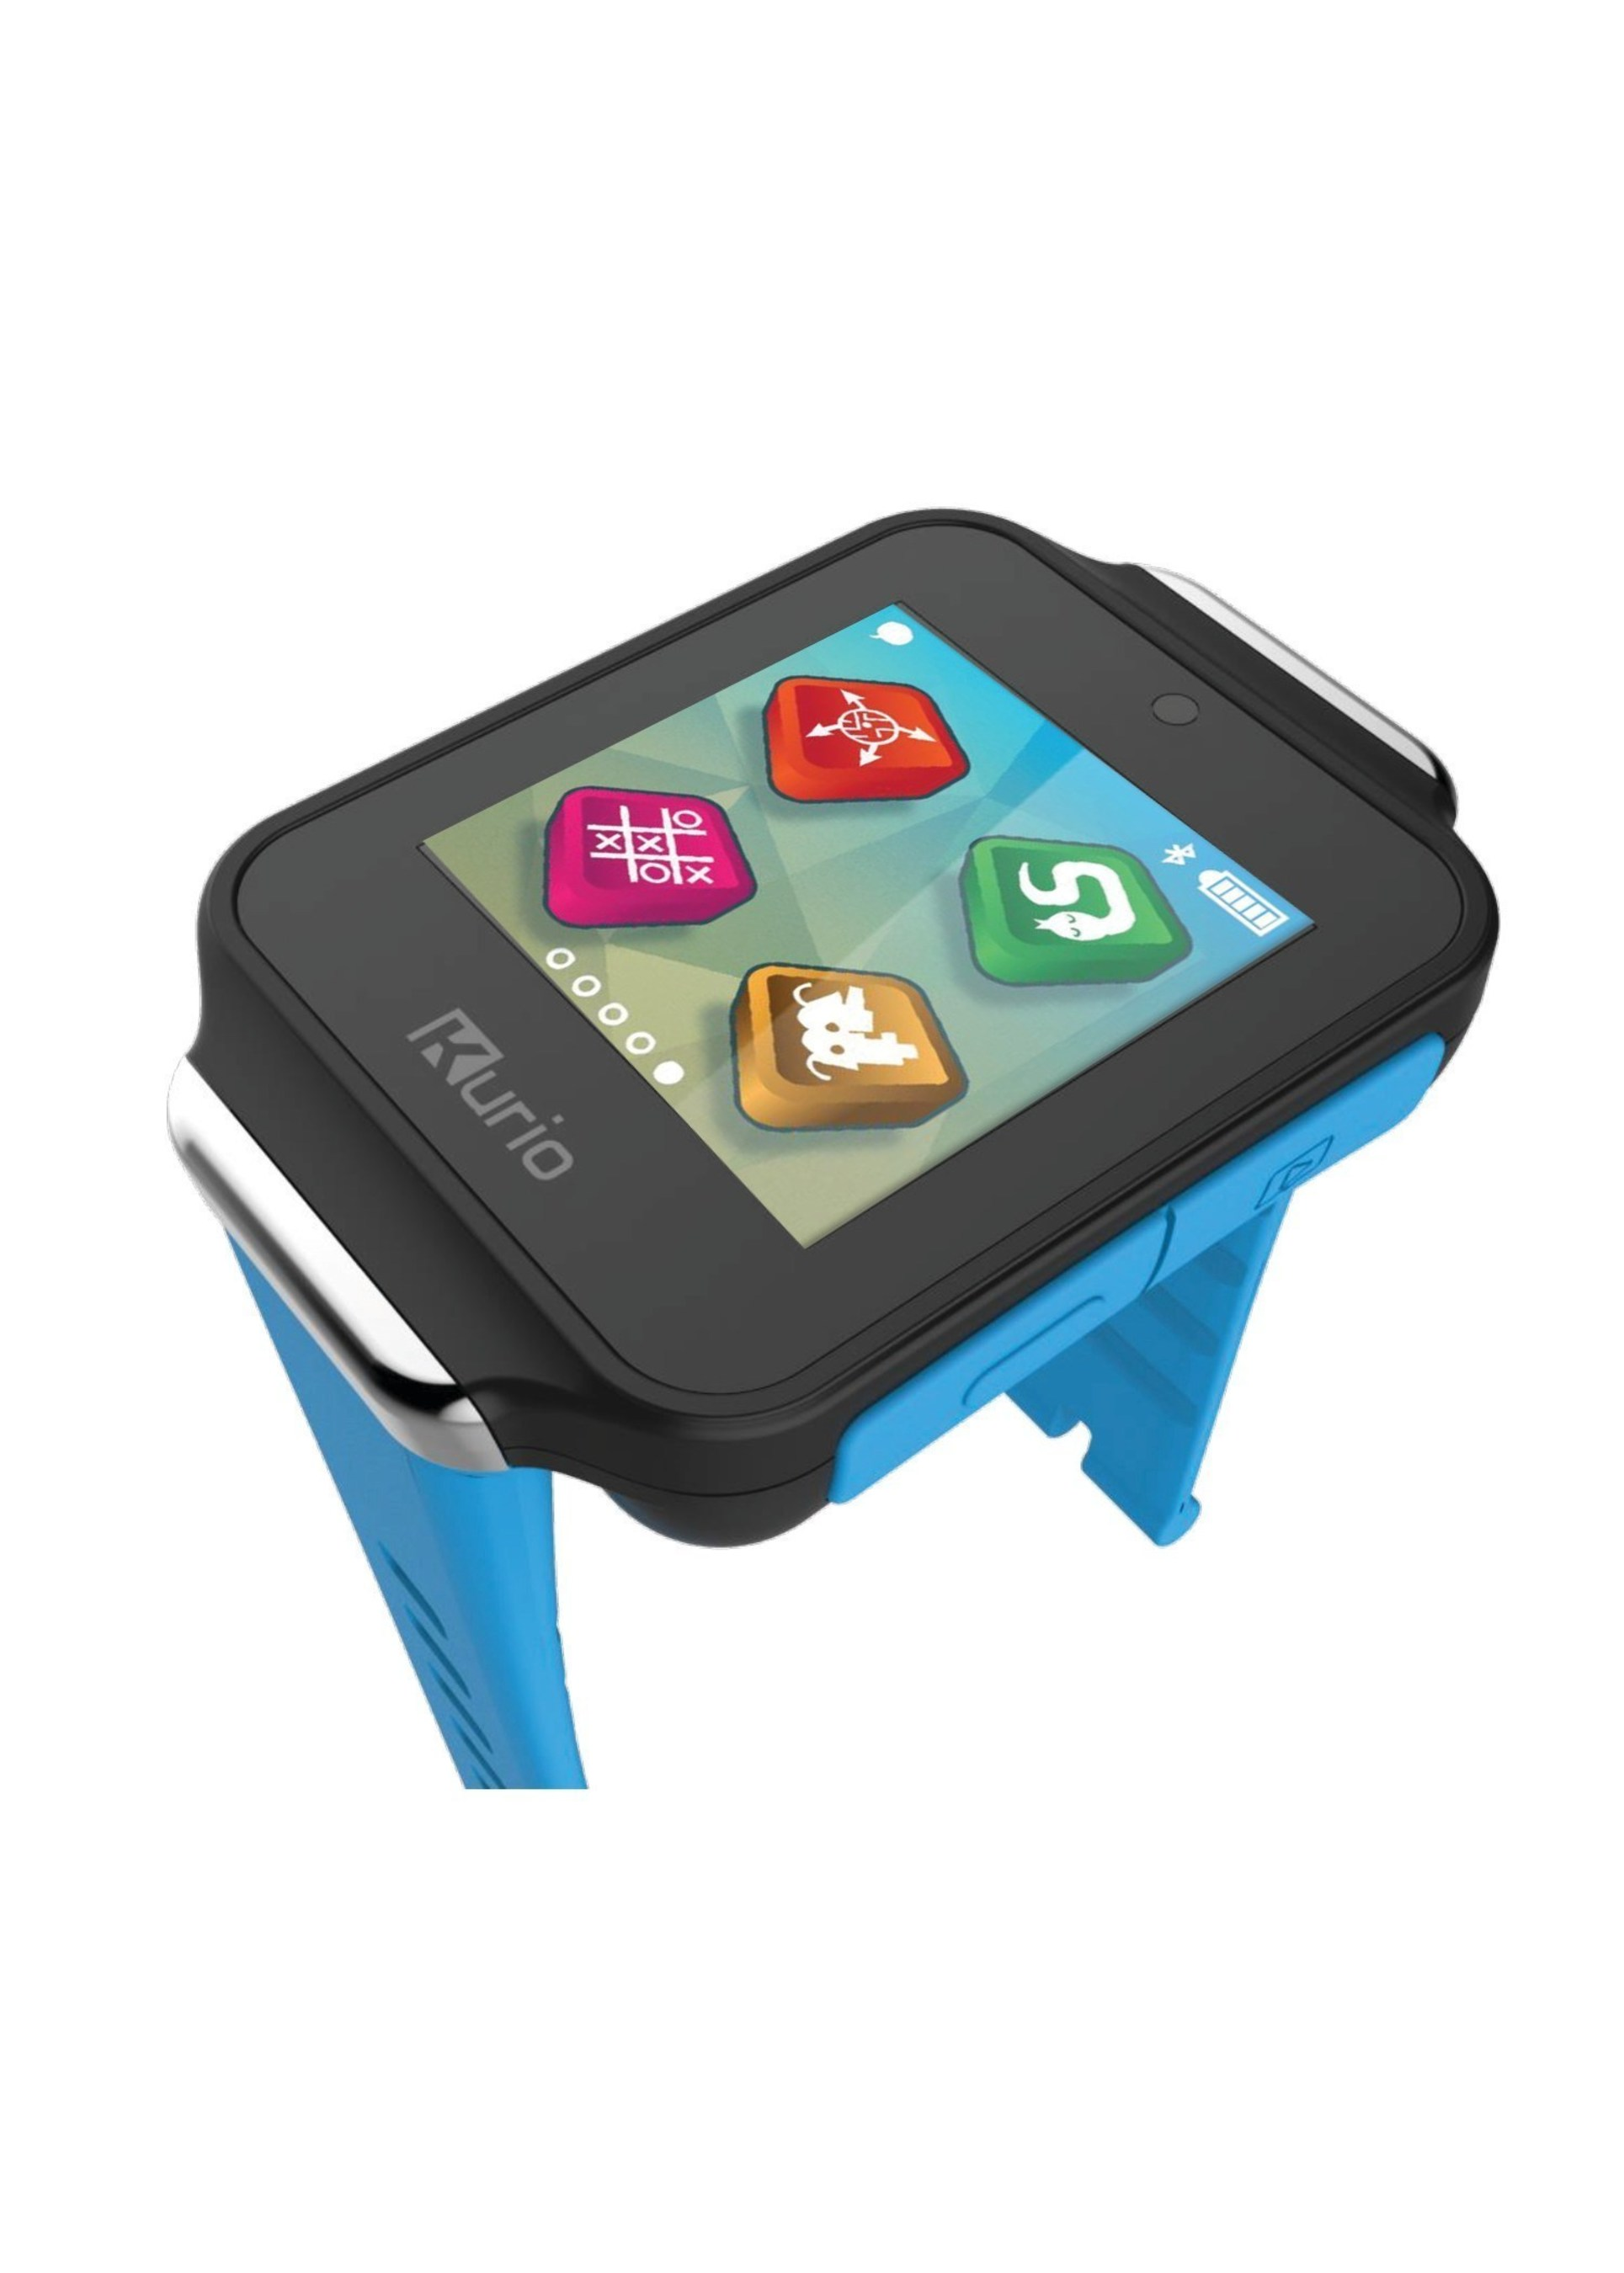 KD Group's Kurio Watch is a real, working Bluetooth smartwatch designed specifically for kids ages 6 to 12.  This fashion-forward, high-tech kids' wearable combines smartwatch functions with modern messaging capabilities, fun mini-games, a high-quality camera and video recorder, and more.